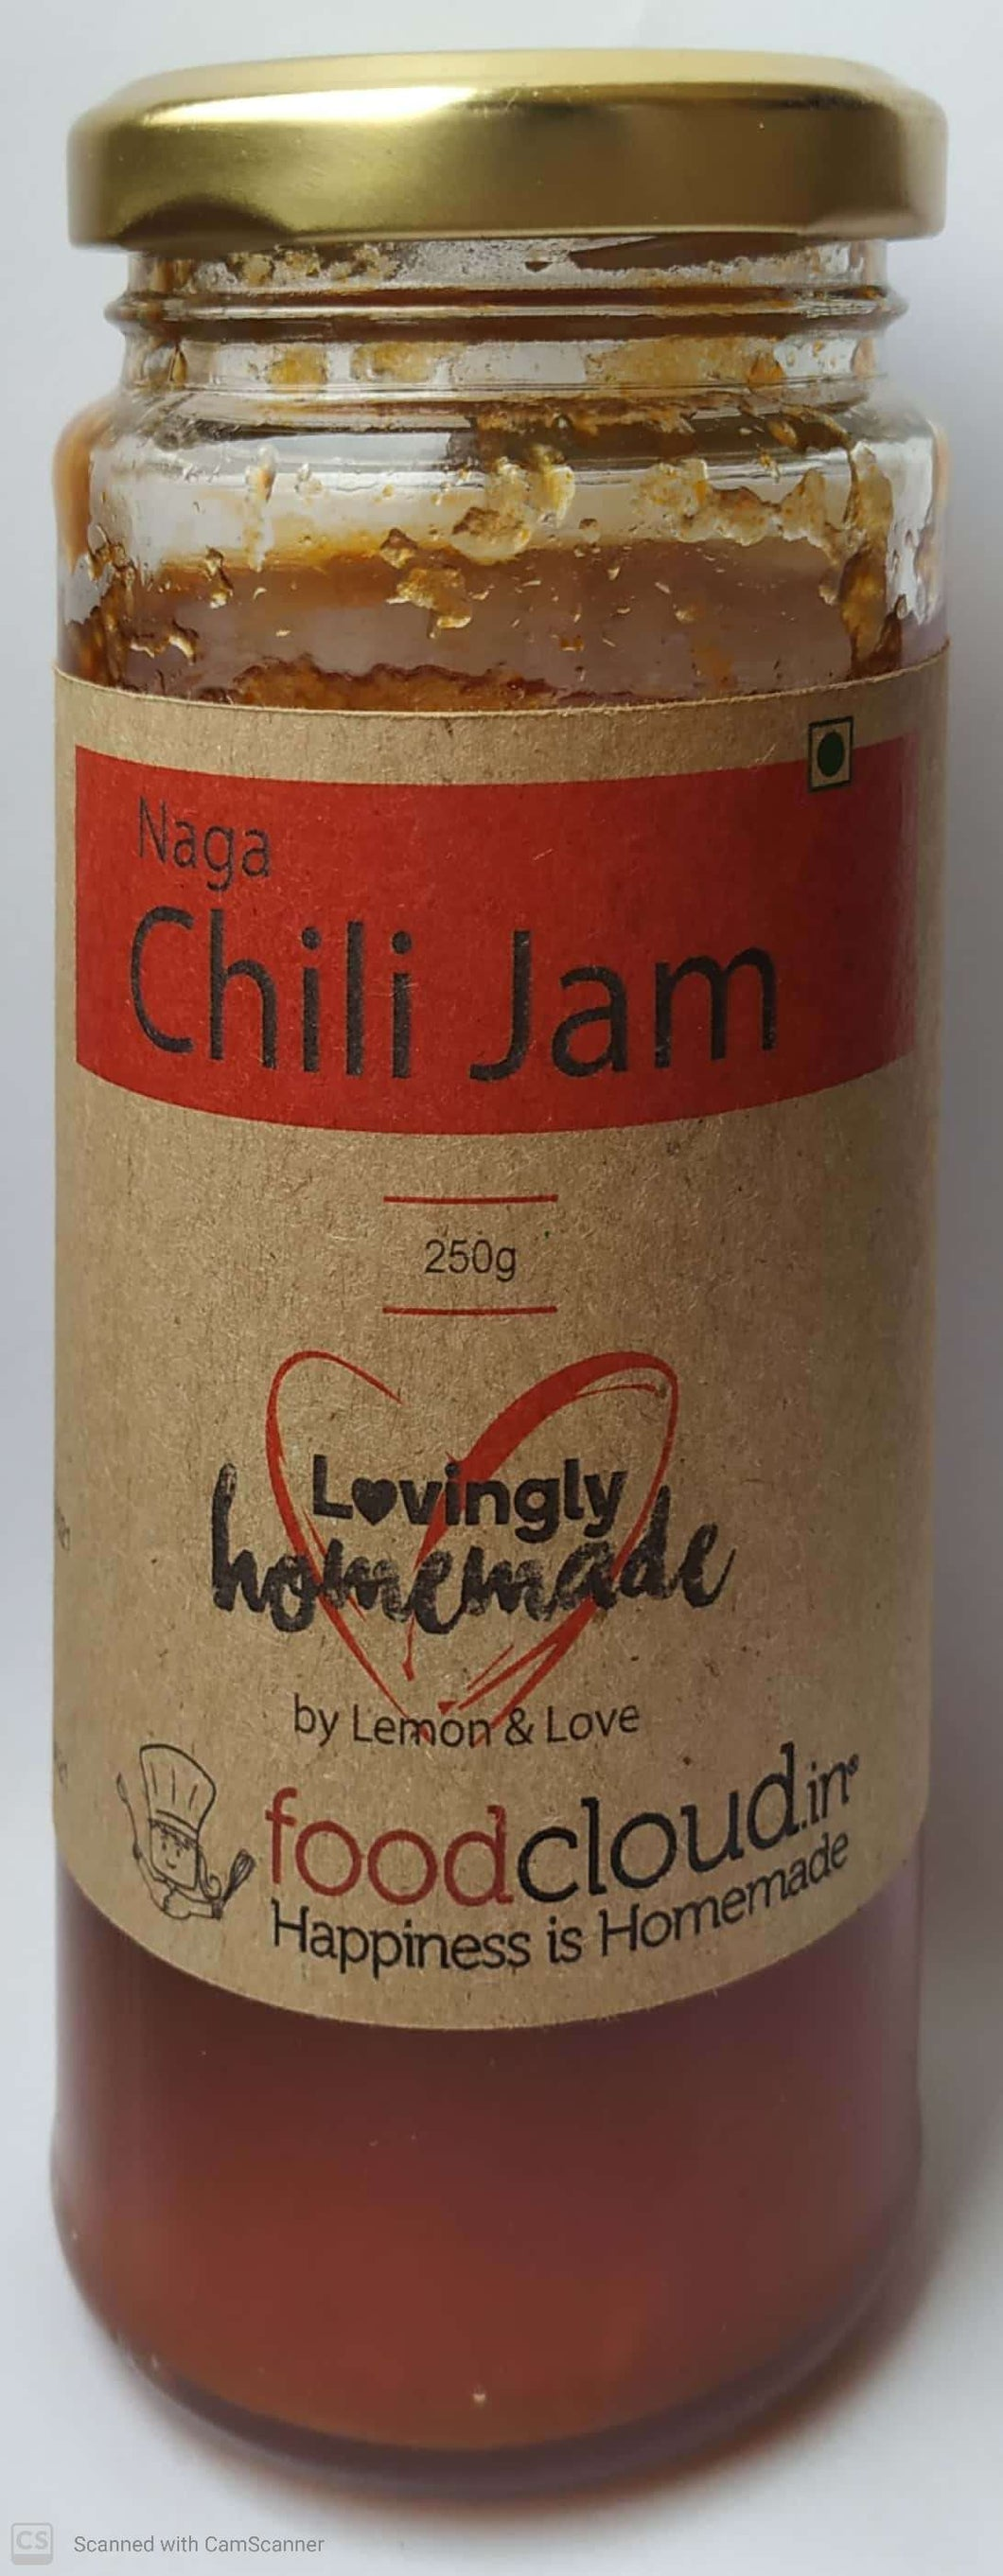 Naga Chilly Jam